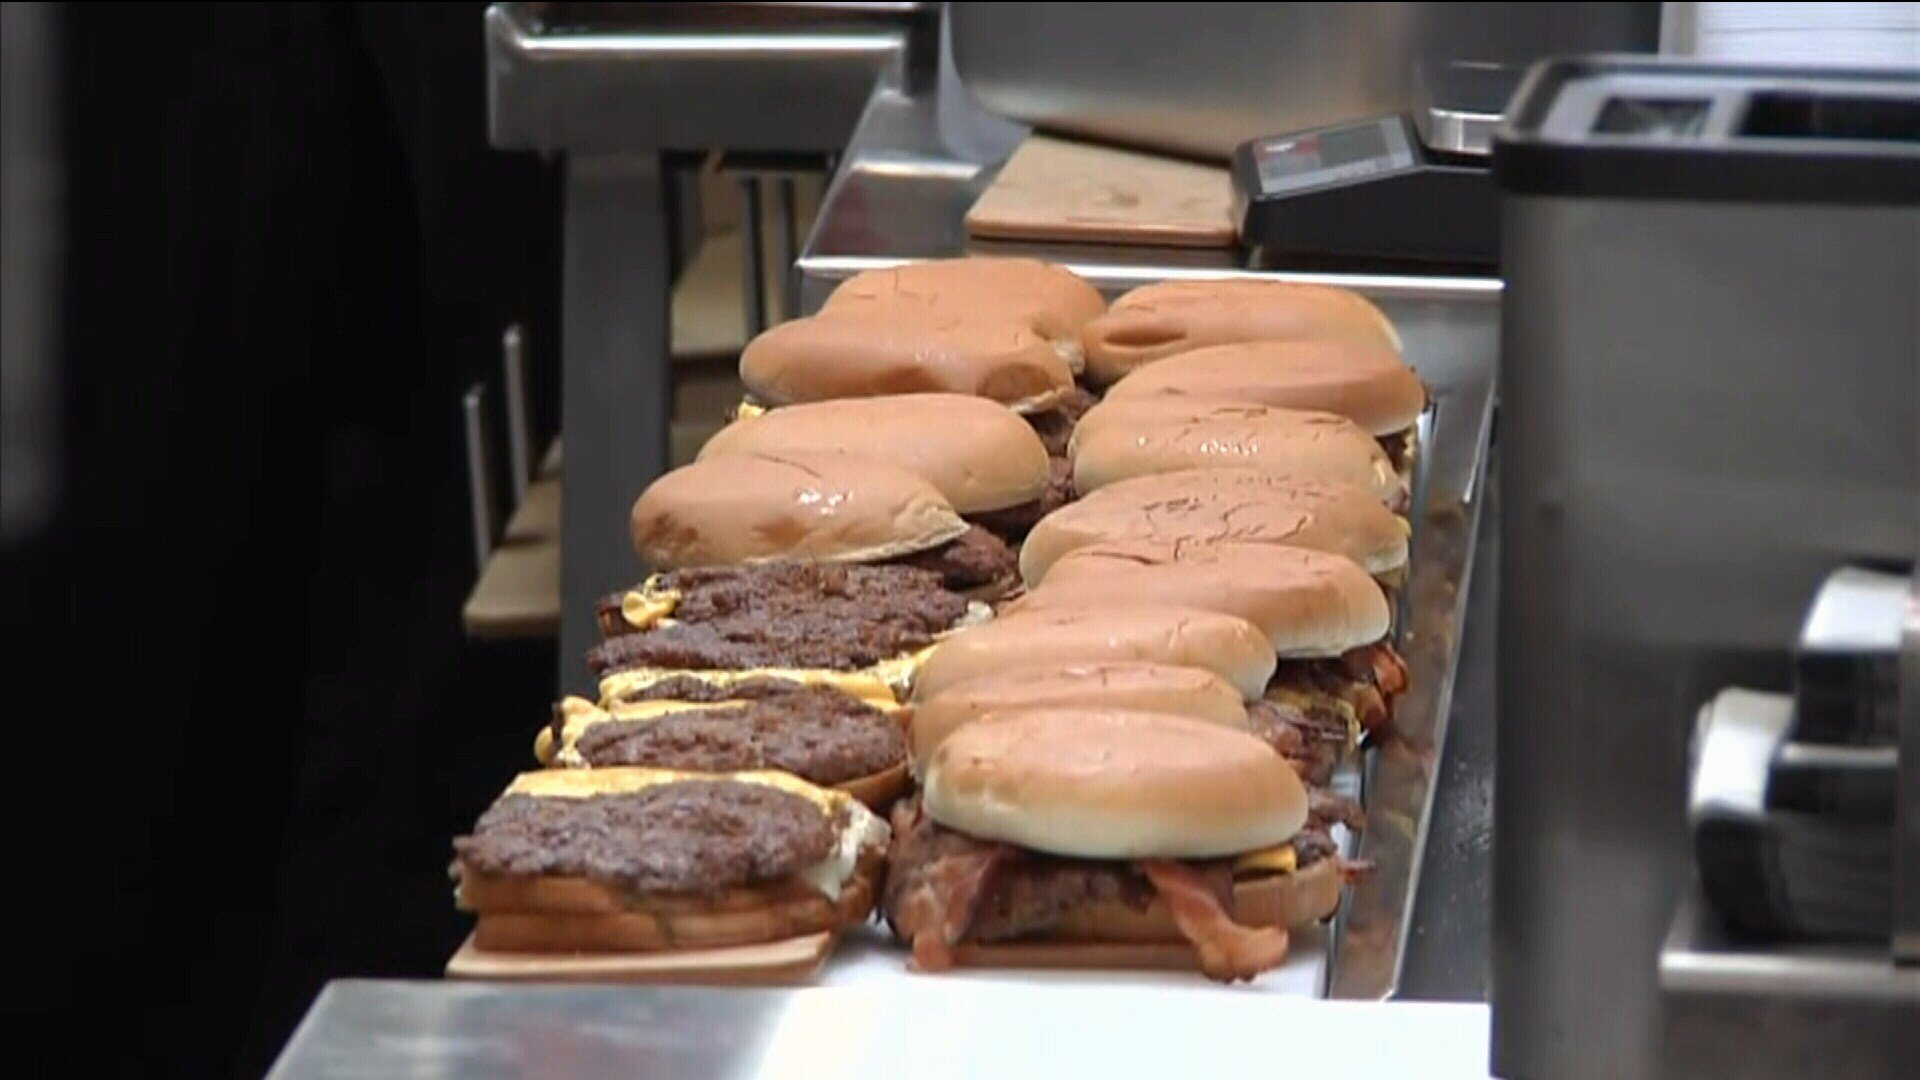 Steak N' Shake is known for his steak burgers and hand-dipped shakes.